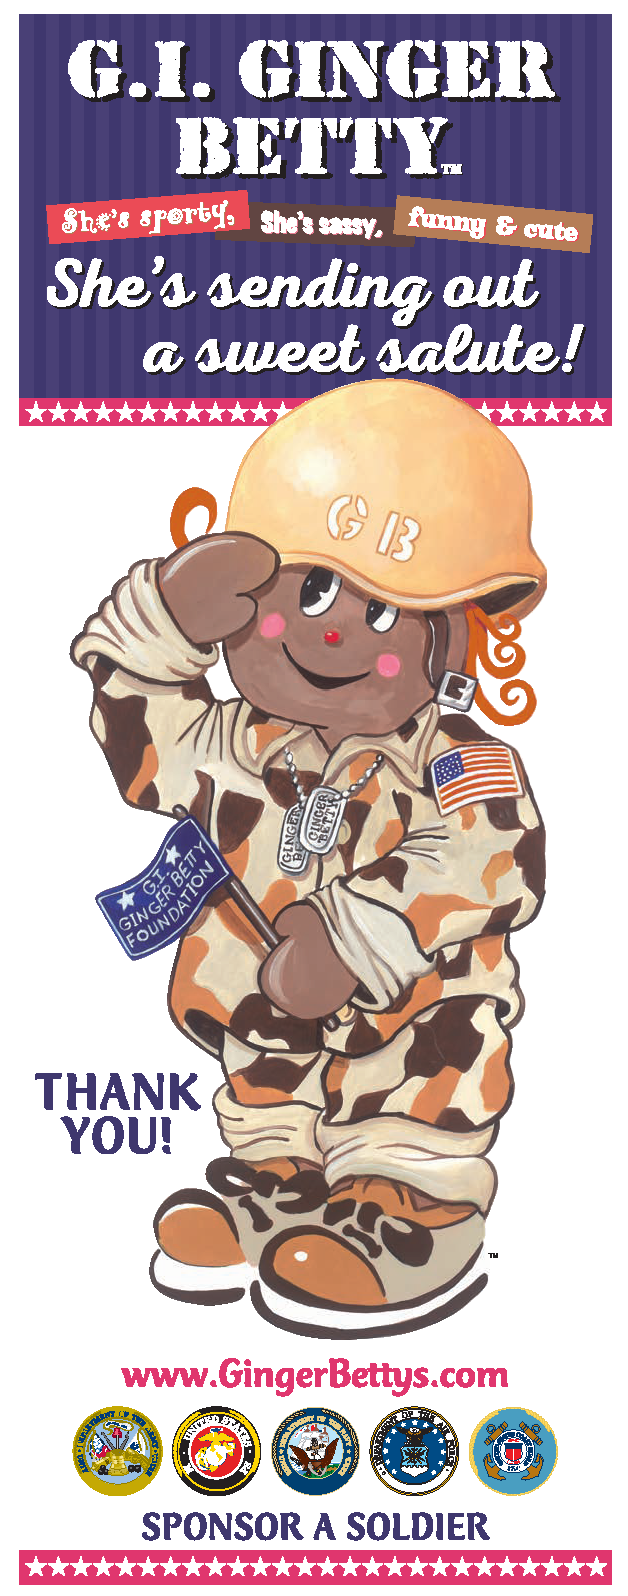 GI Ginger Betty Logo Updated.png